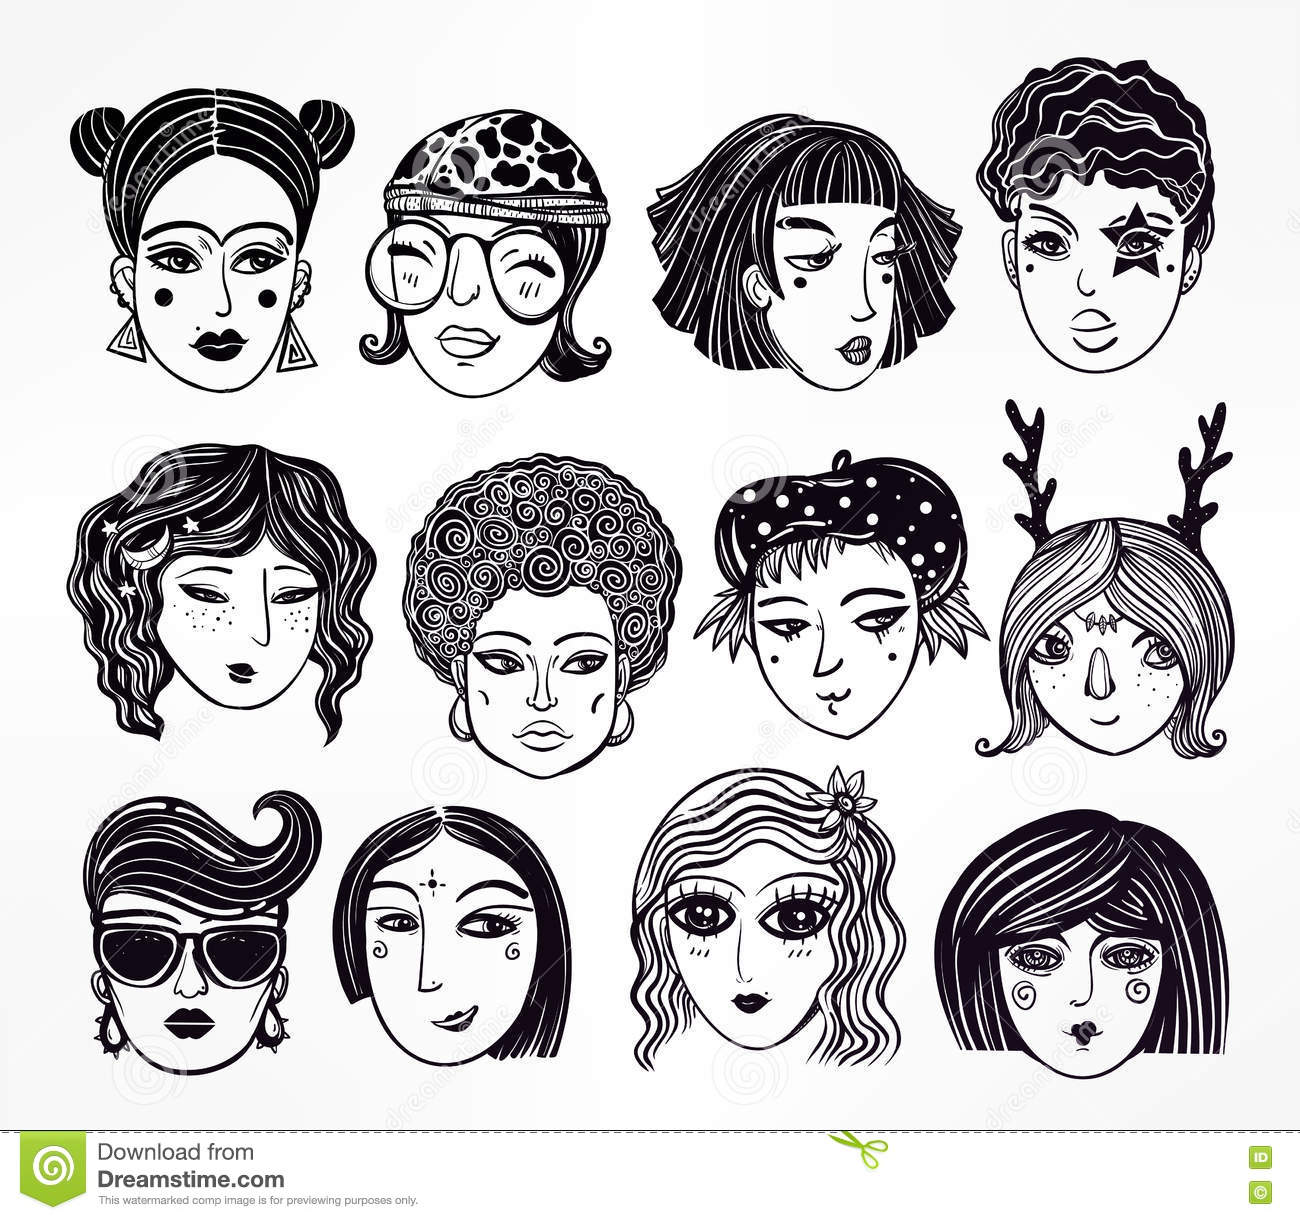 Doodle style set of diverse female faces stock vector for Doodle art faces